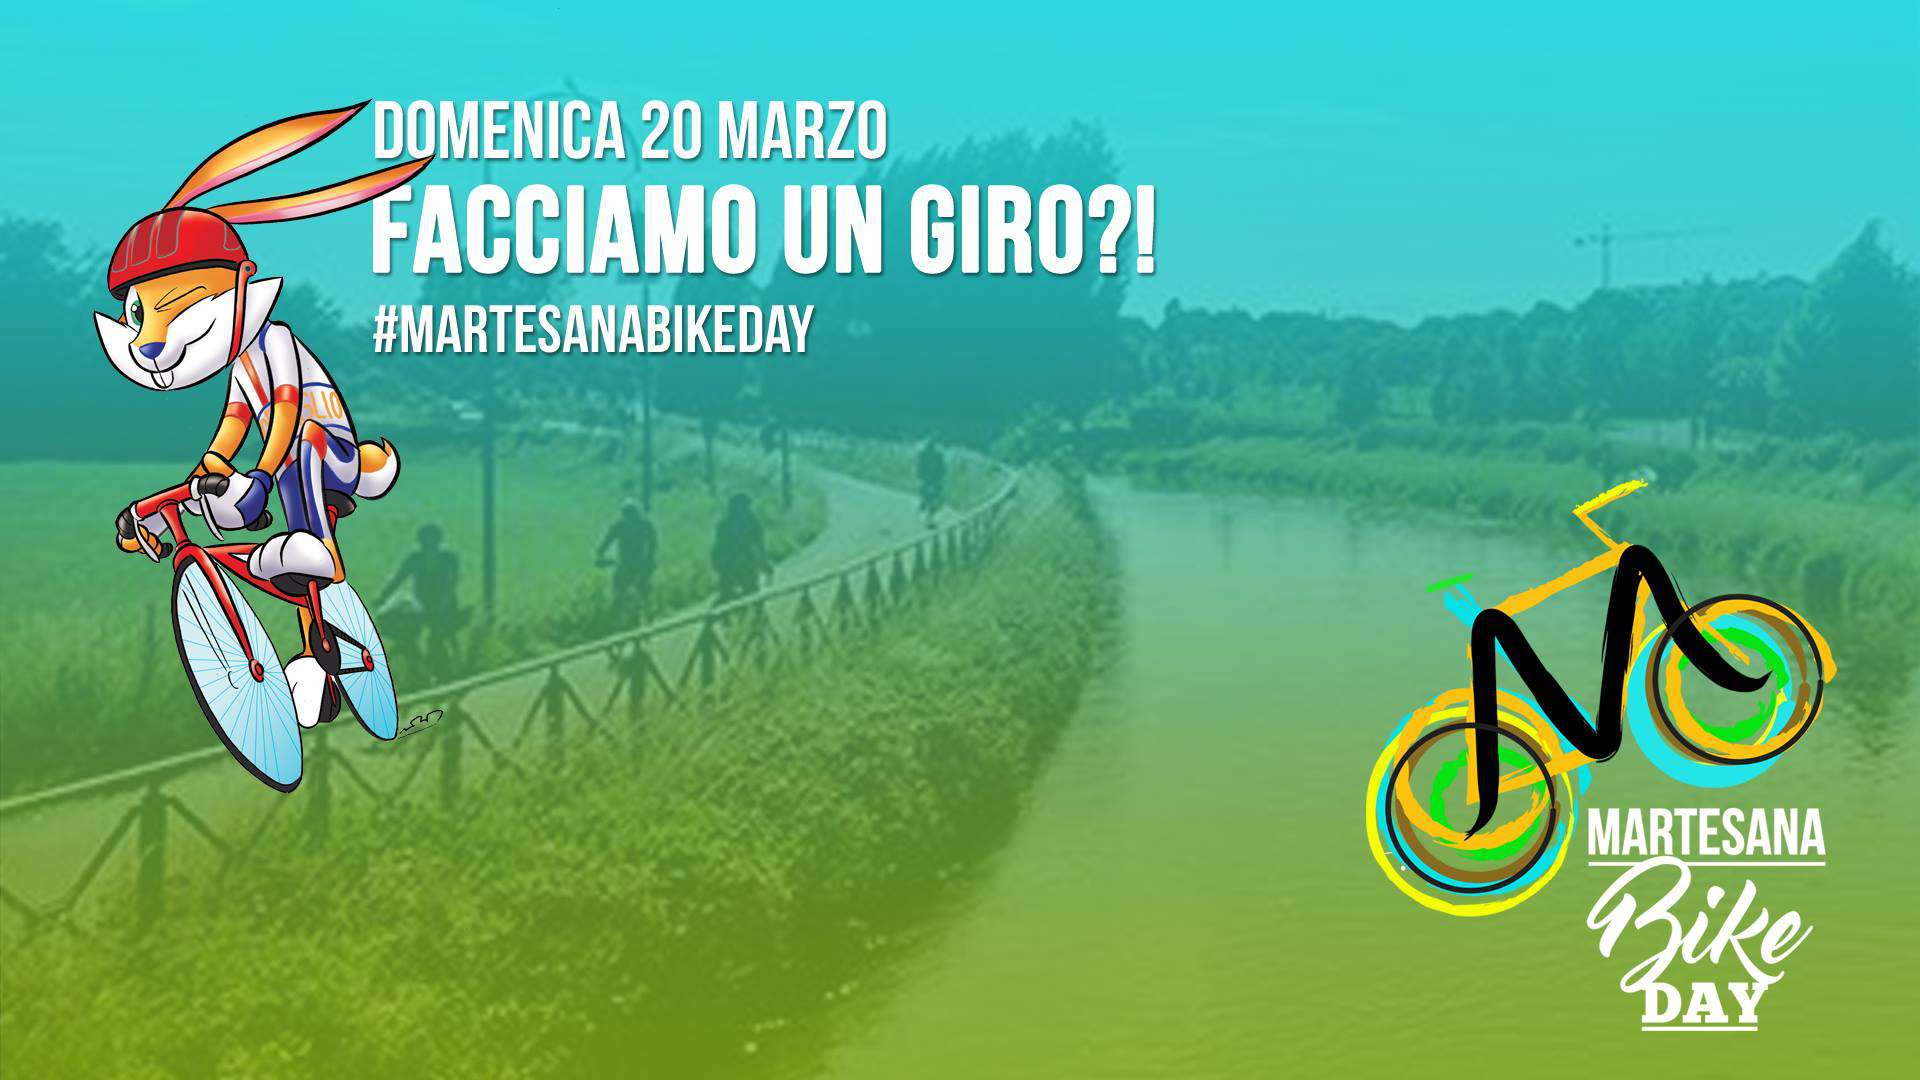 martesana bike day